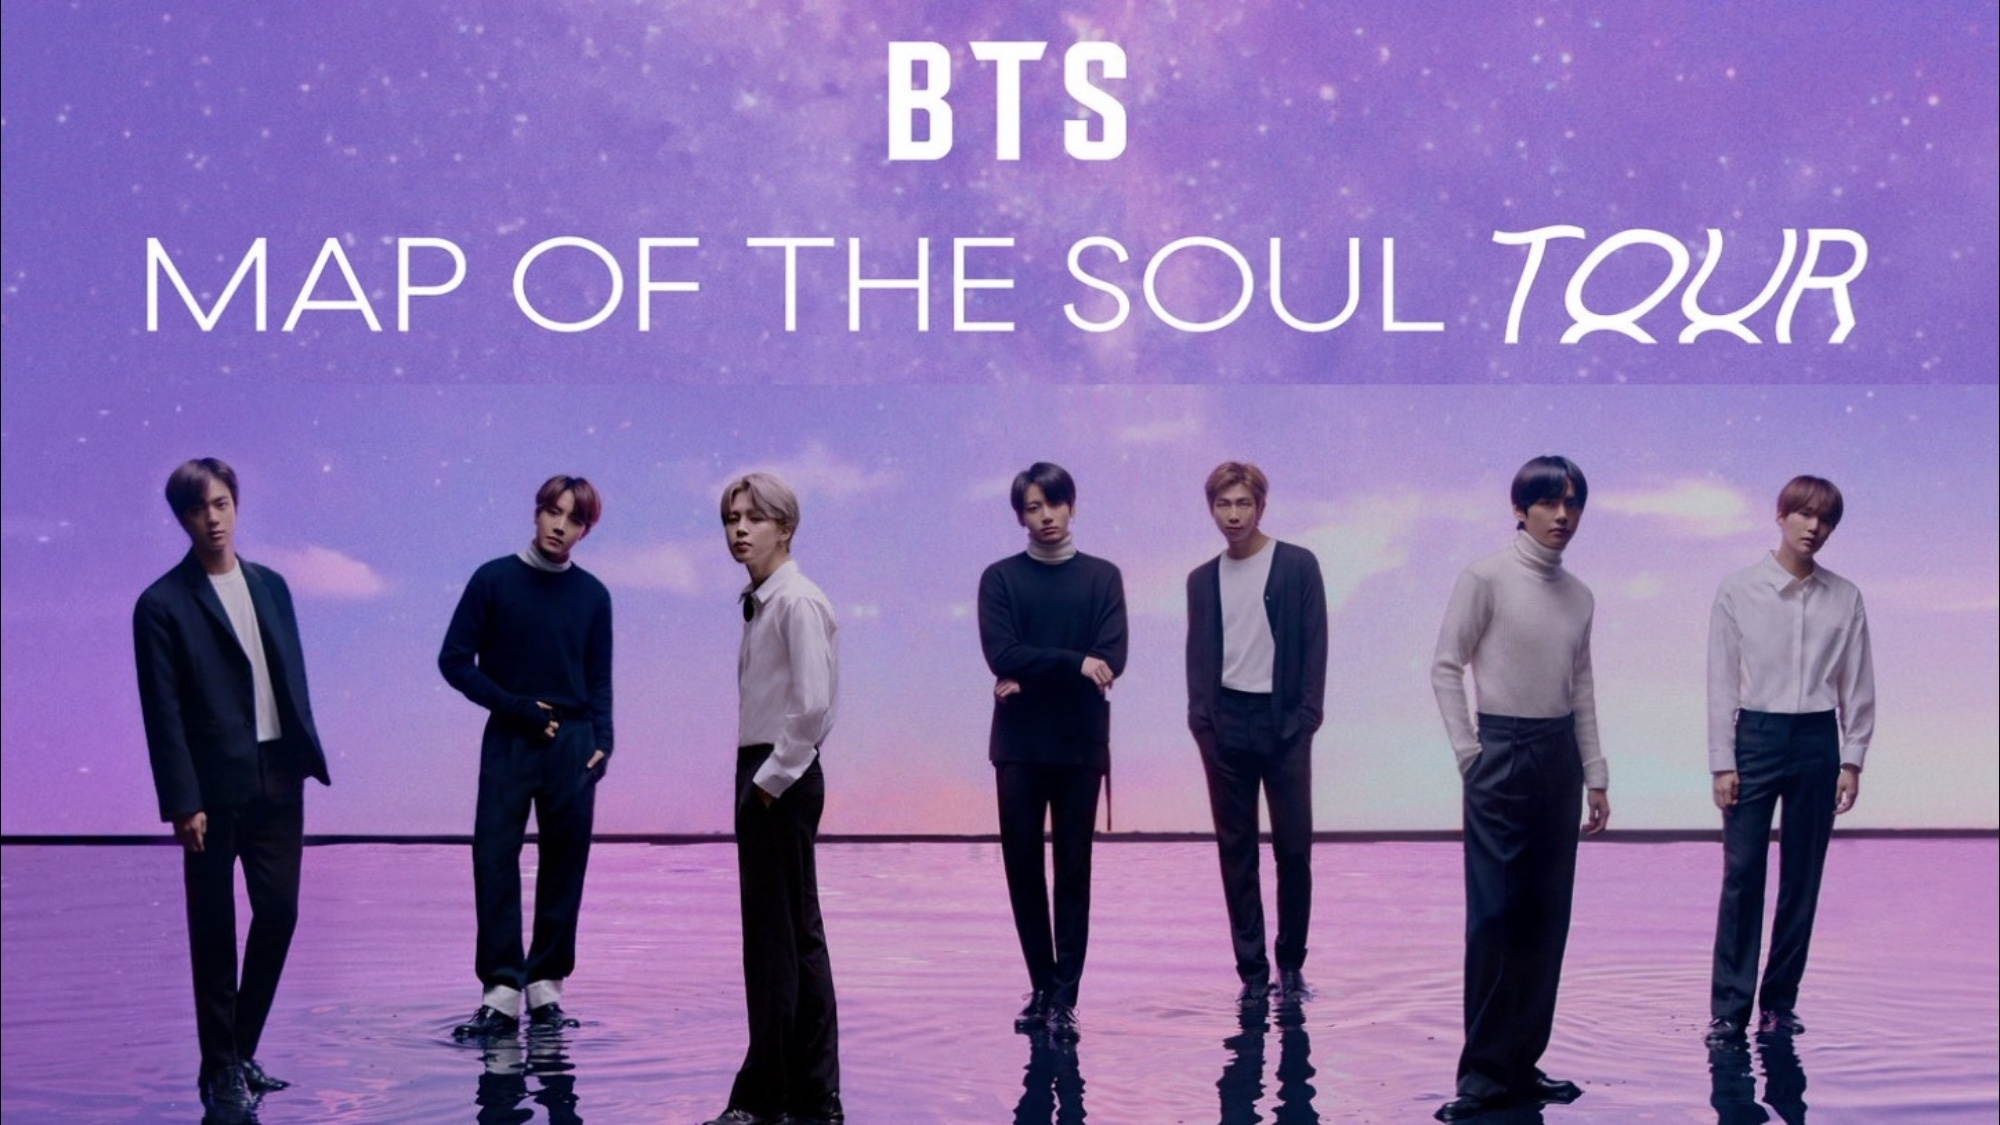 Bts Map Of The Soul Tour 2020 開催決定 チケット ライブ会場